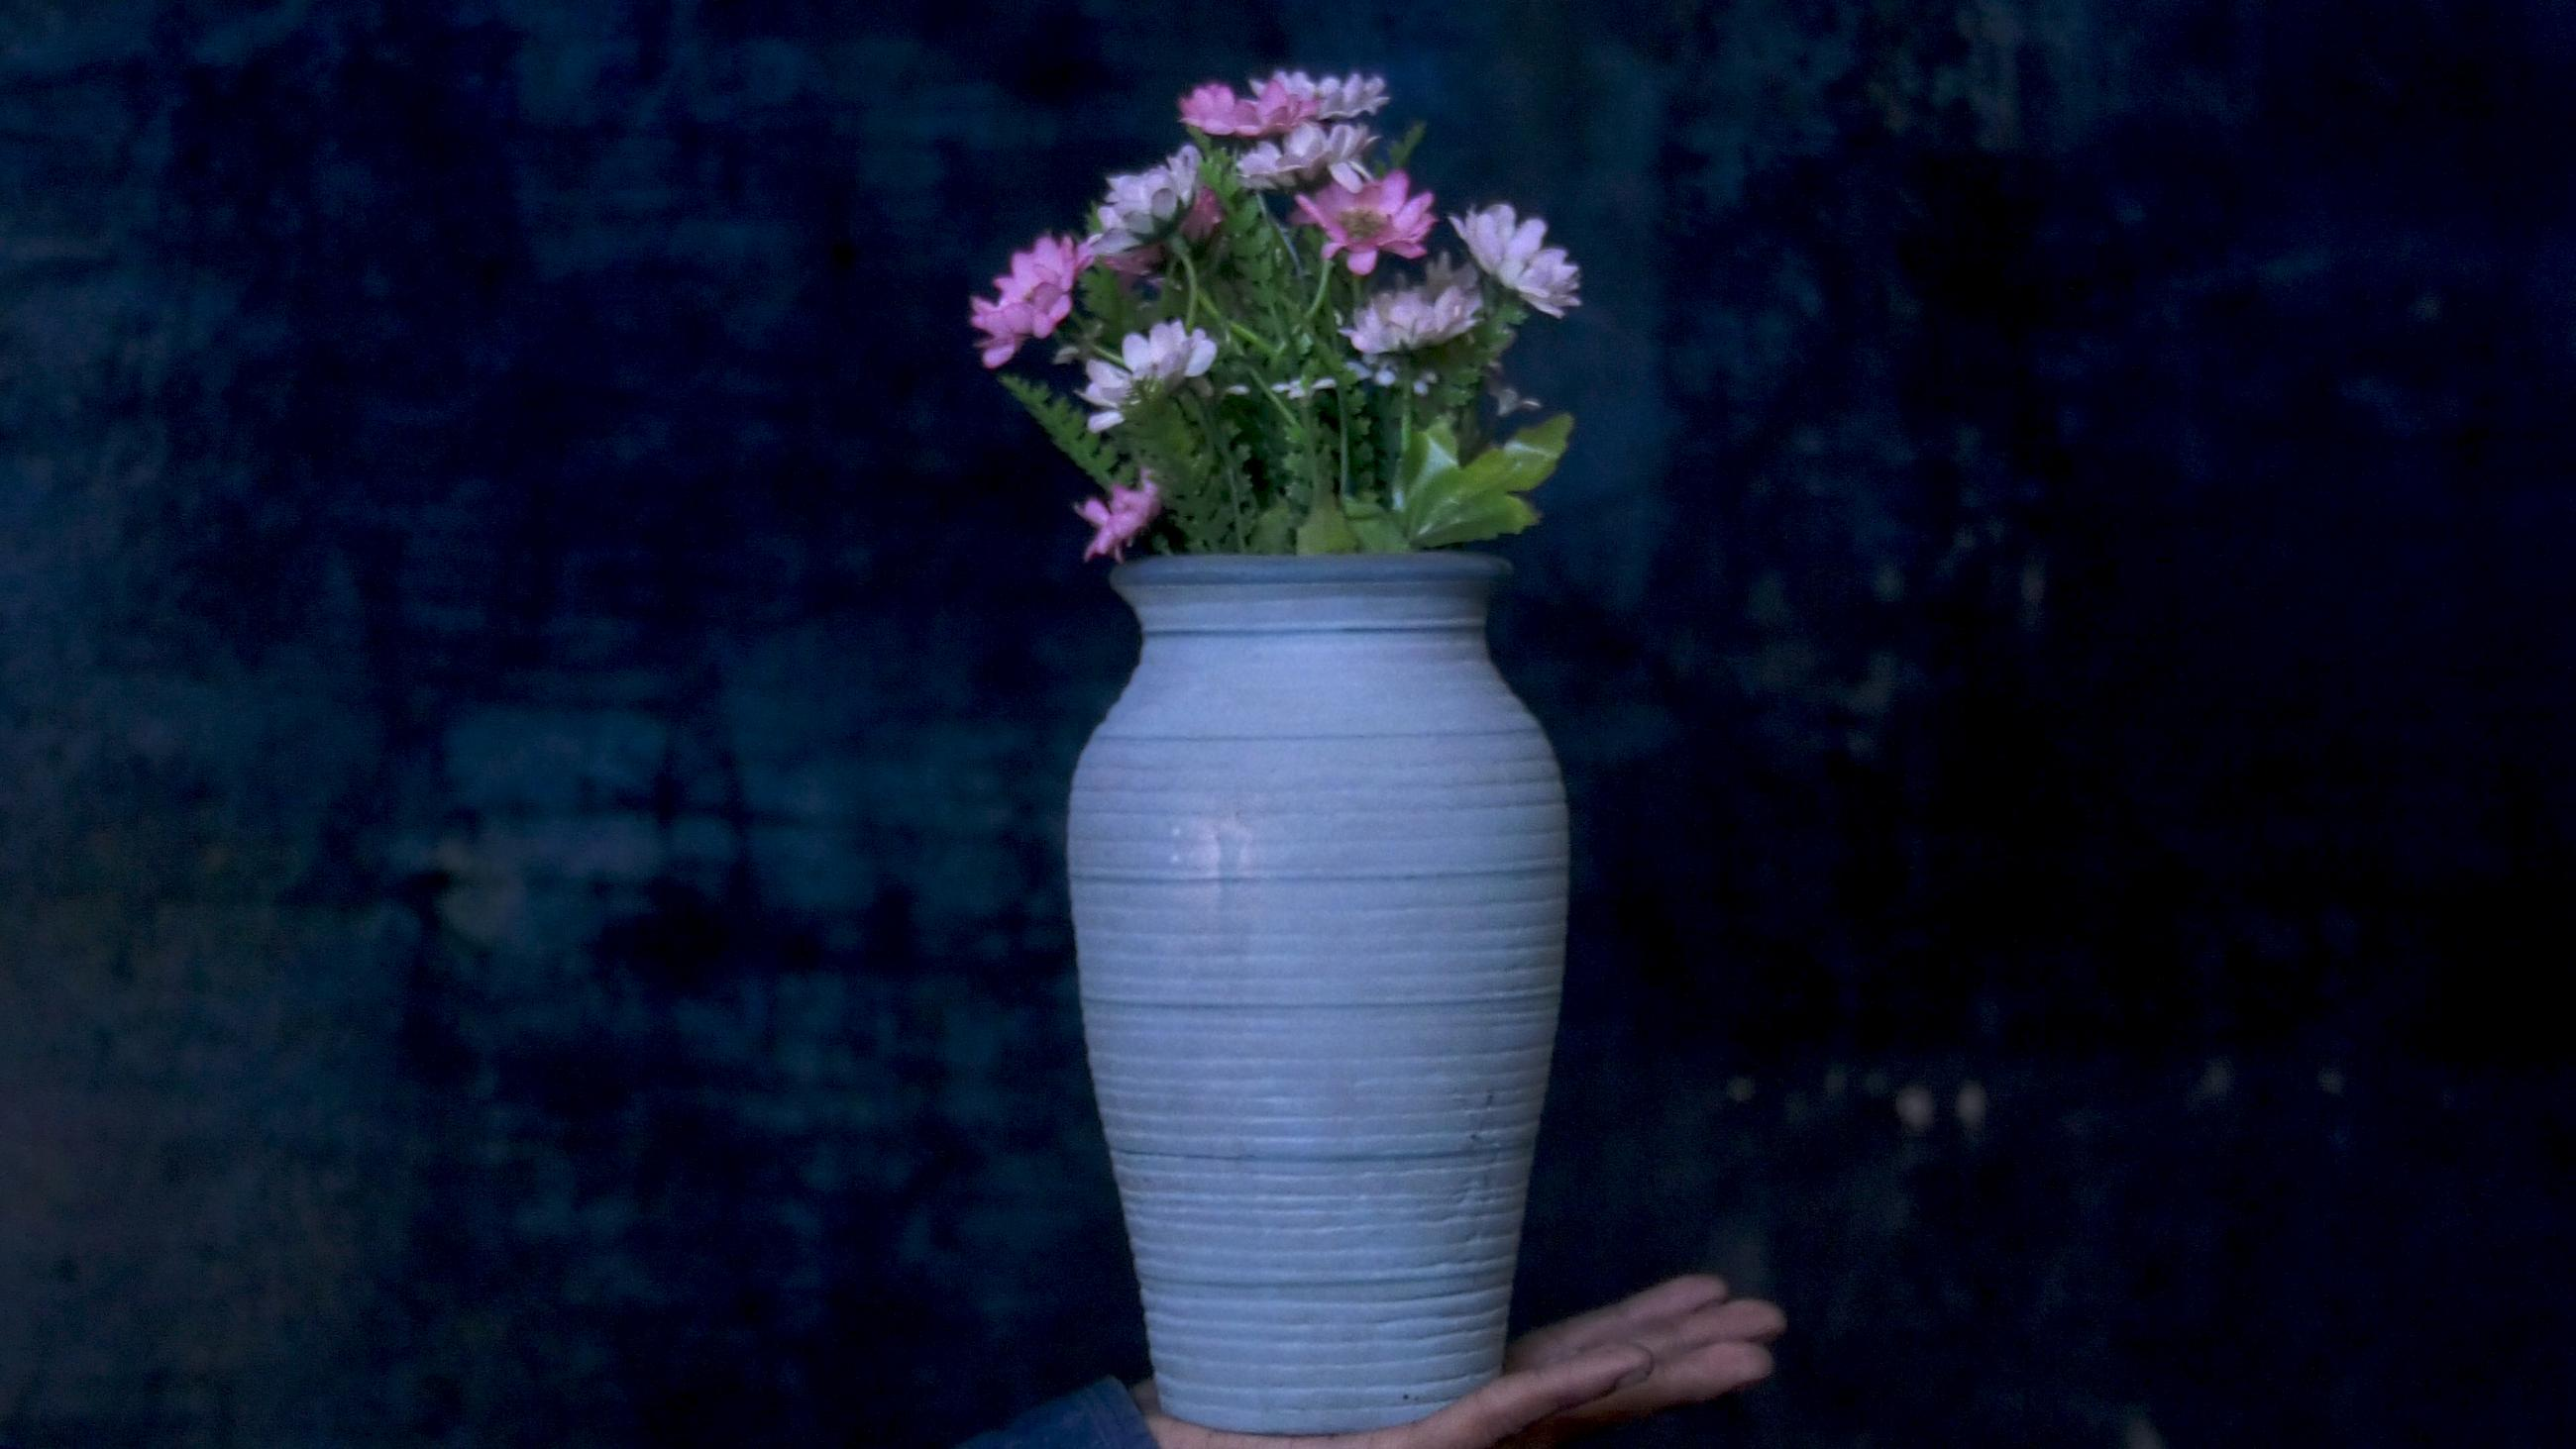 Blue vase of pink and white flowers